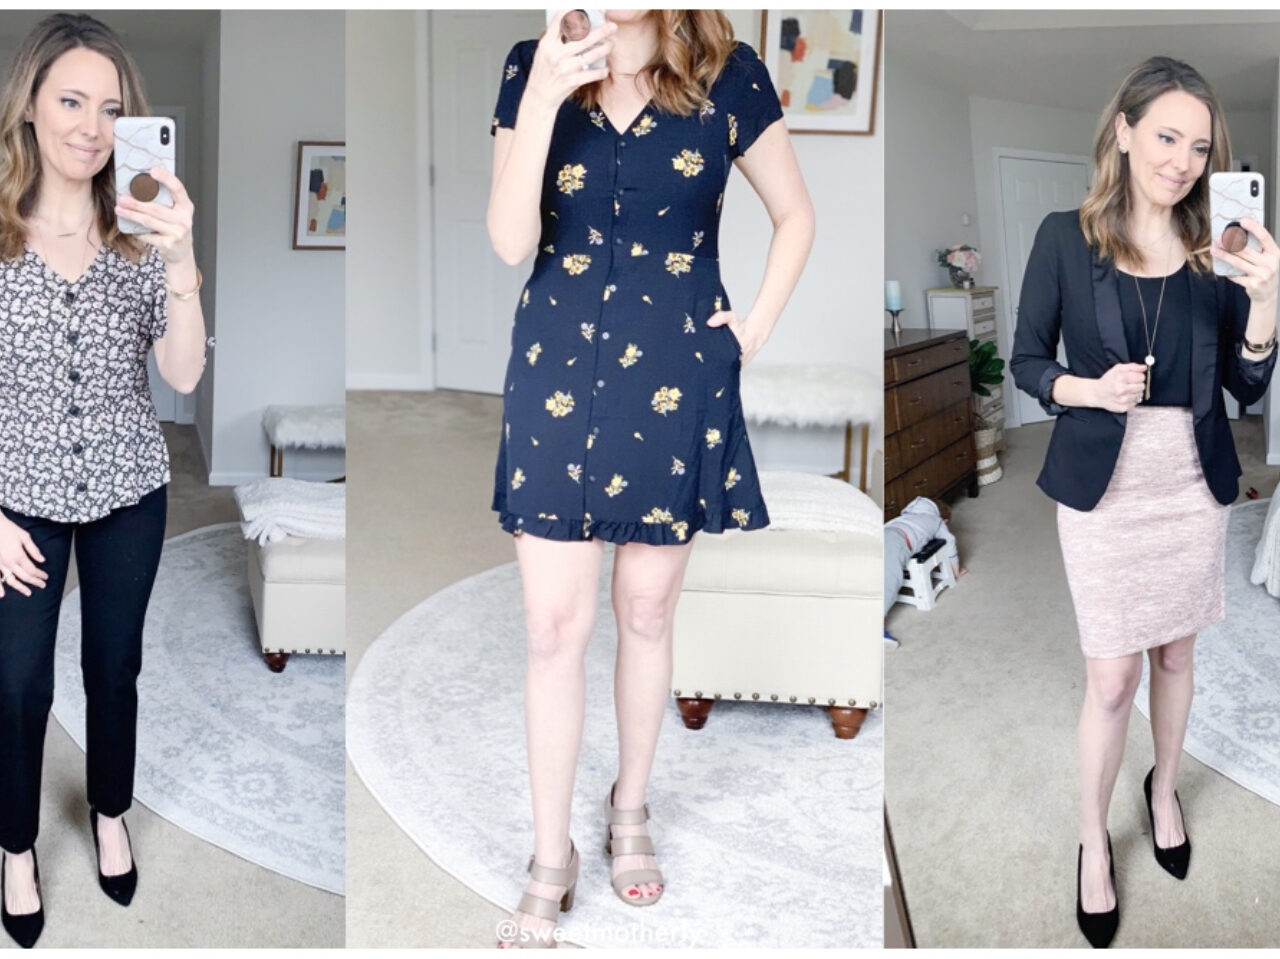 Weekly Work Wardrobe: Easter Dress Part 2